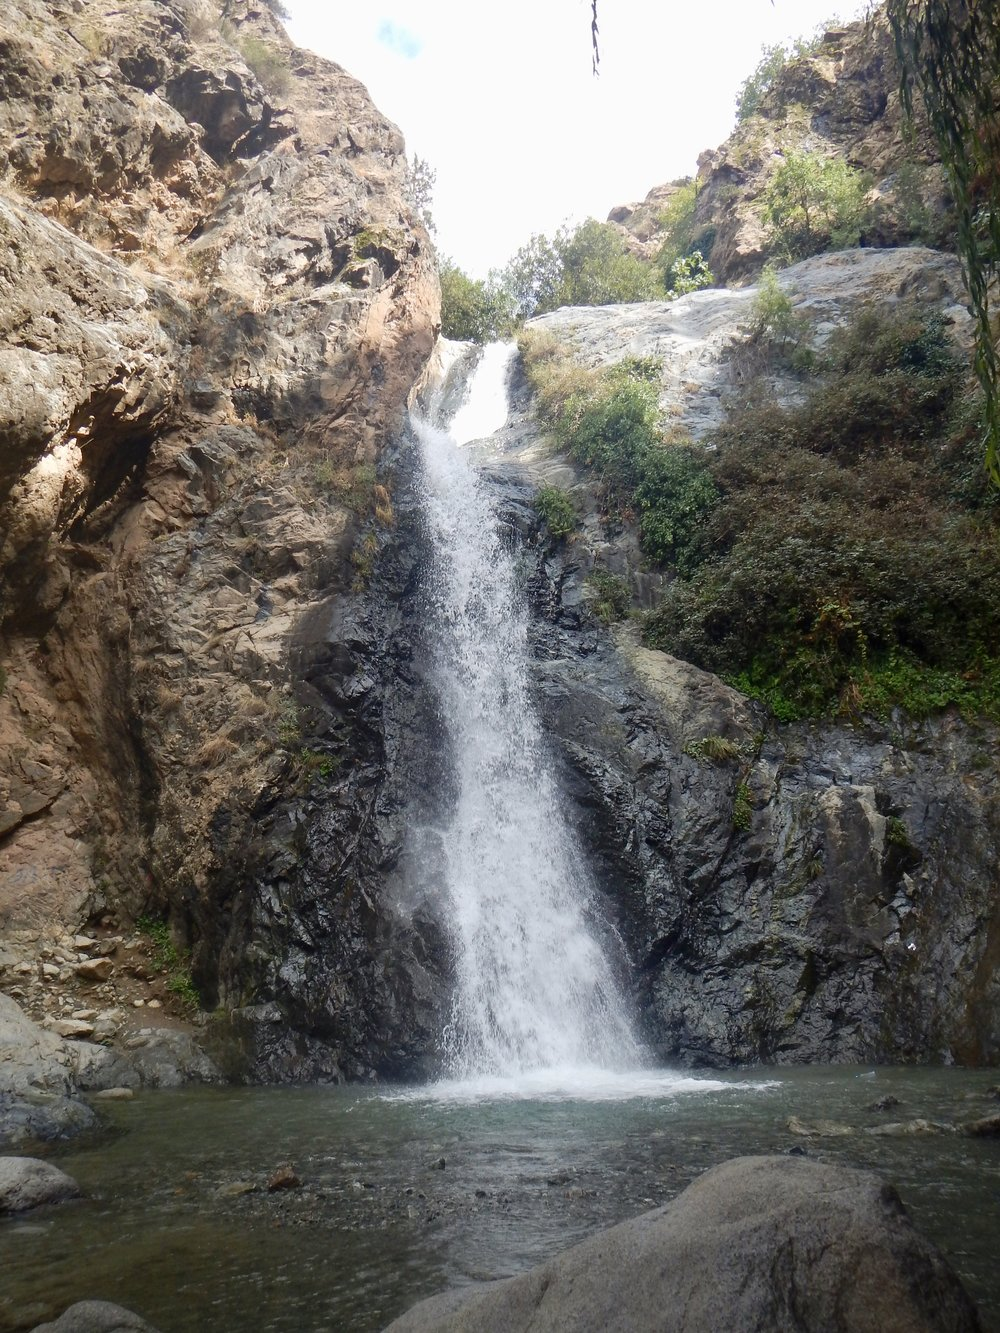 Waterfall near Ouzoud Falls, Marrackech, Morocco